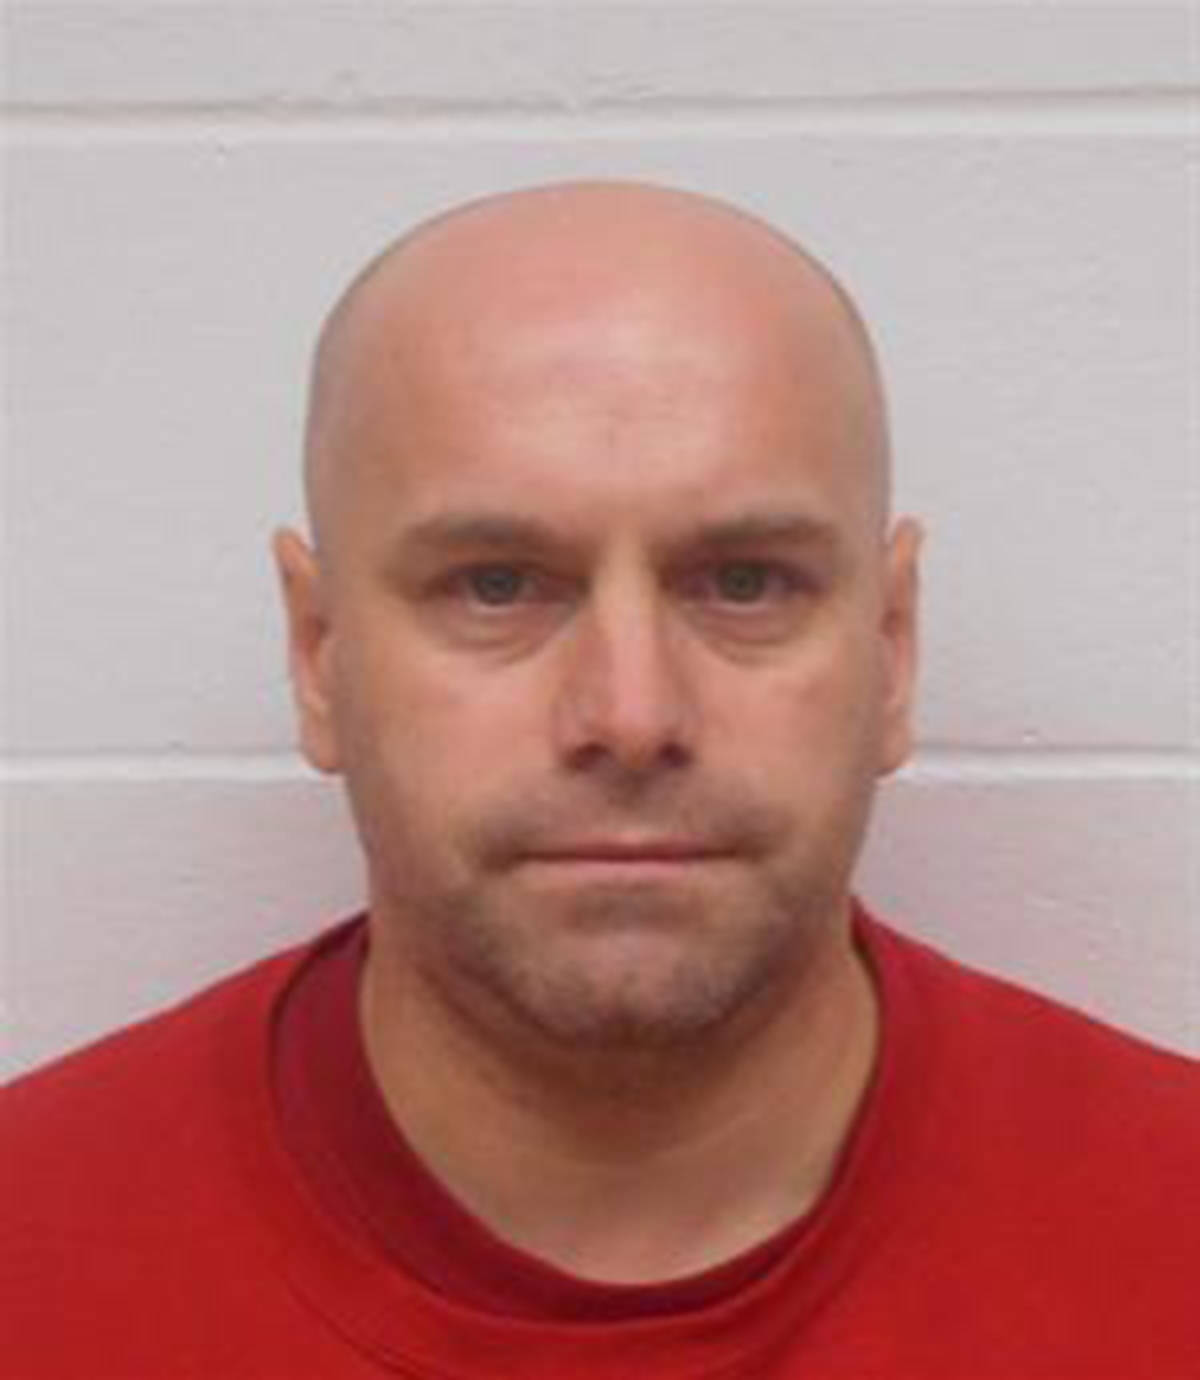 """Name: LAXTON, Peter Curtis Age: 43 Height: 5'1"""" ft Weight: 180 lbs Hair: Bald Eyes: Blue Wanted: Unlawfully at Large including Robbery Warrant in effect: May 14, 2021 Parole Jurisdiction: Vancouver, BC"""